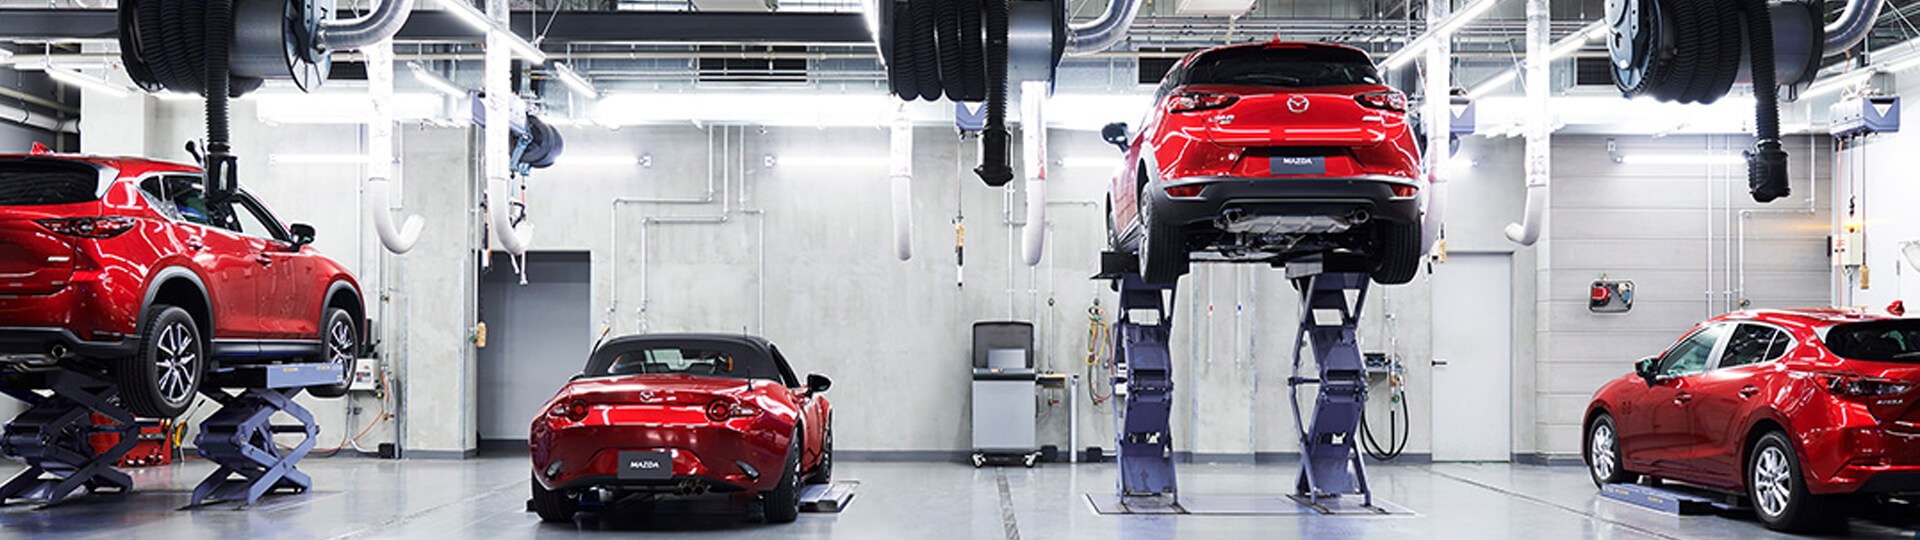 Mazda Vehicles receiving their regularly scheduled maintenance.